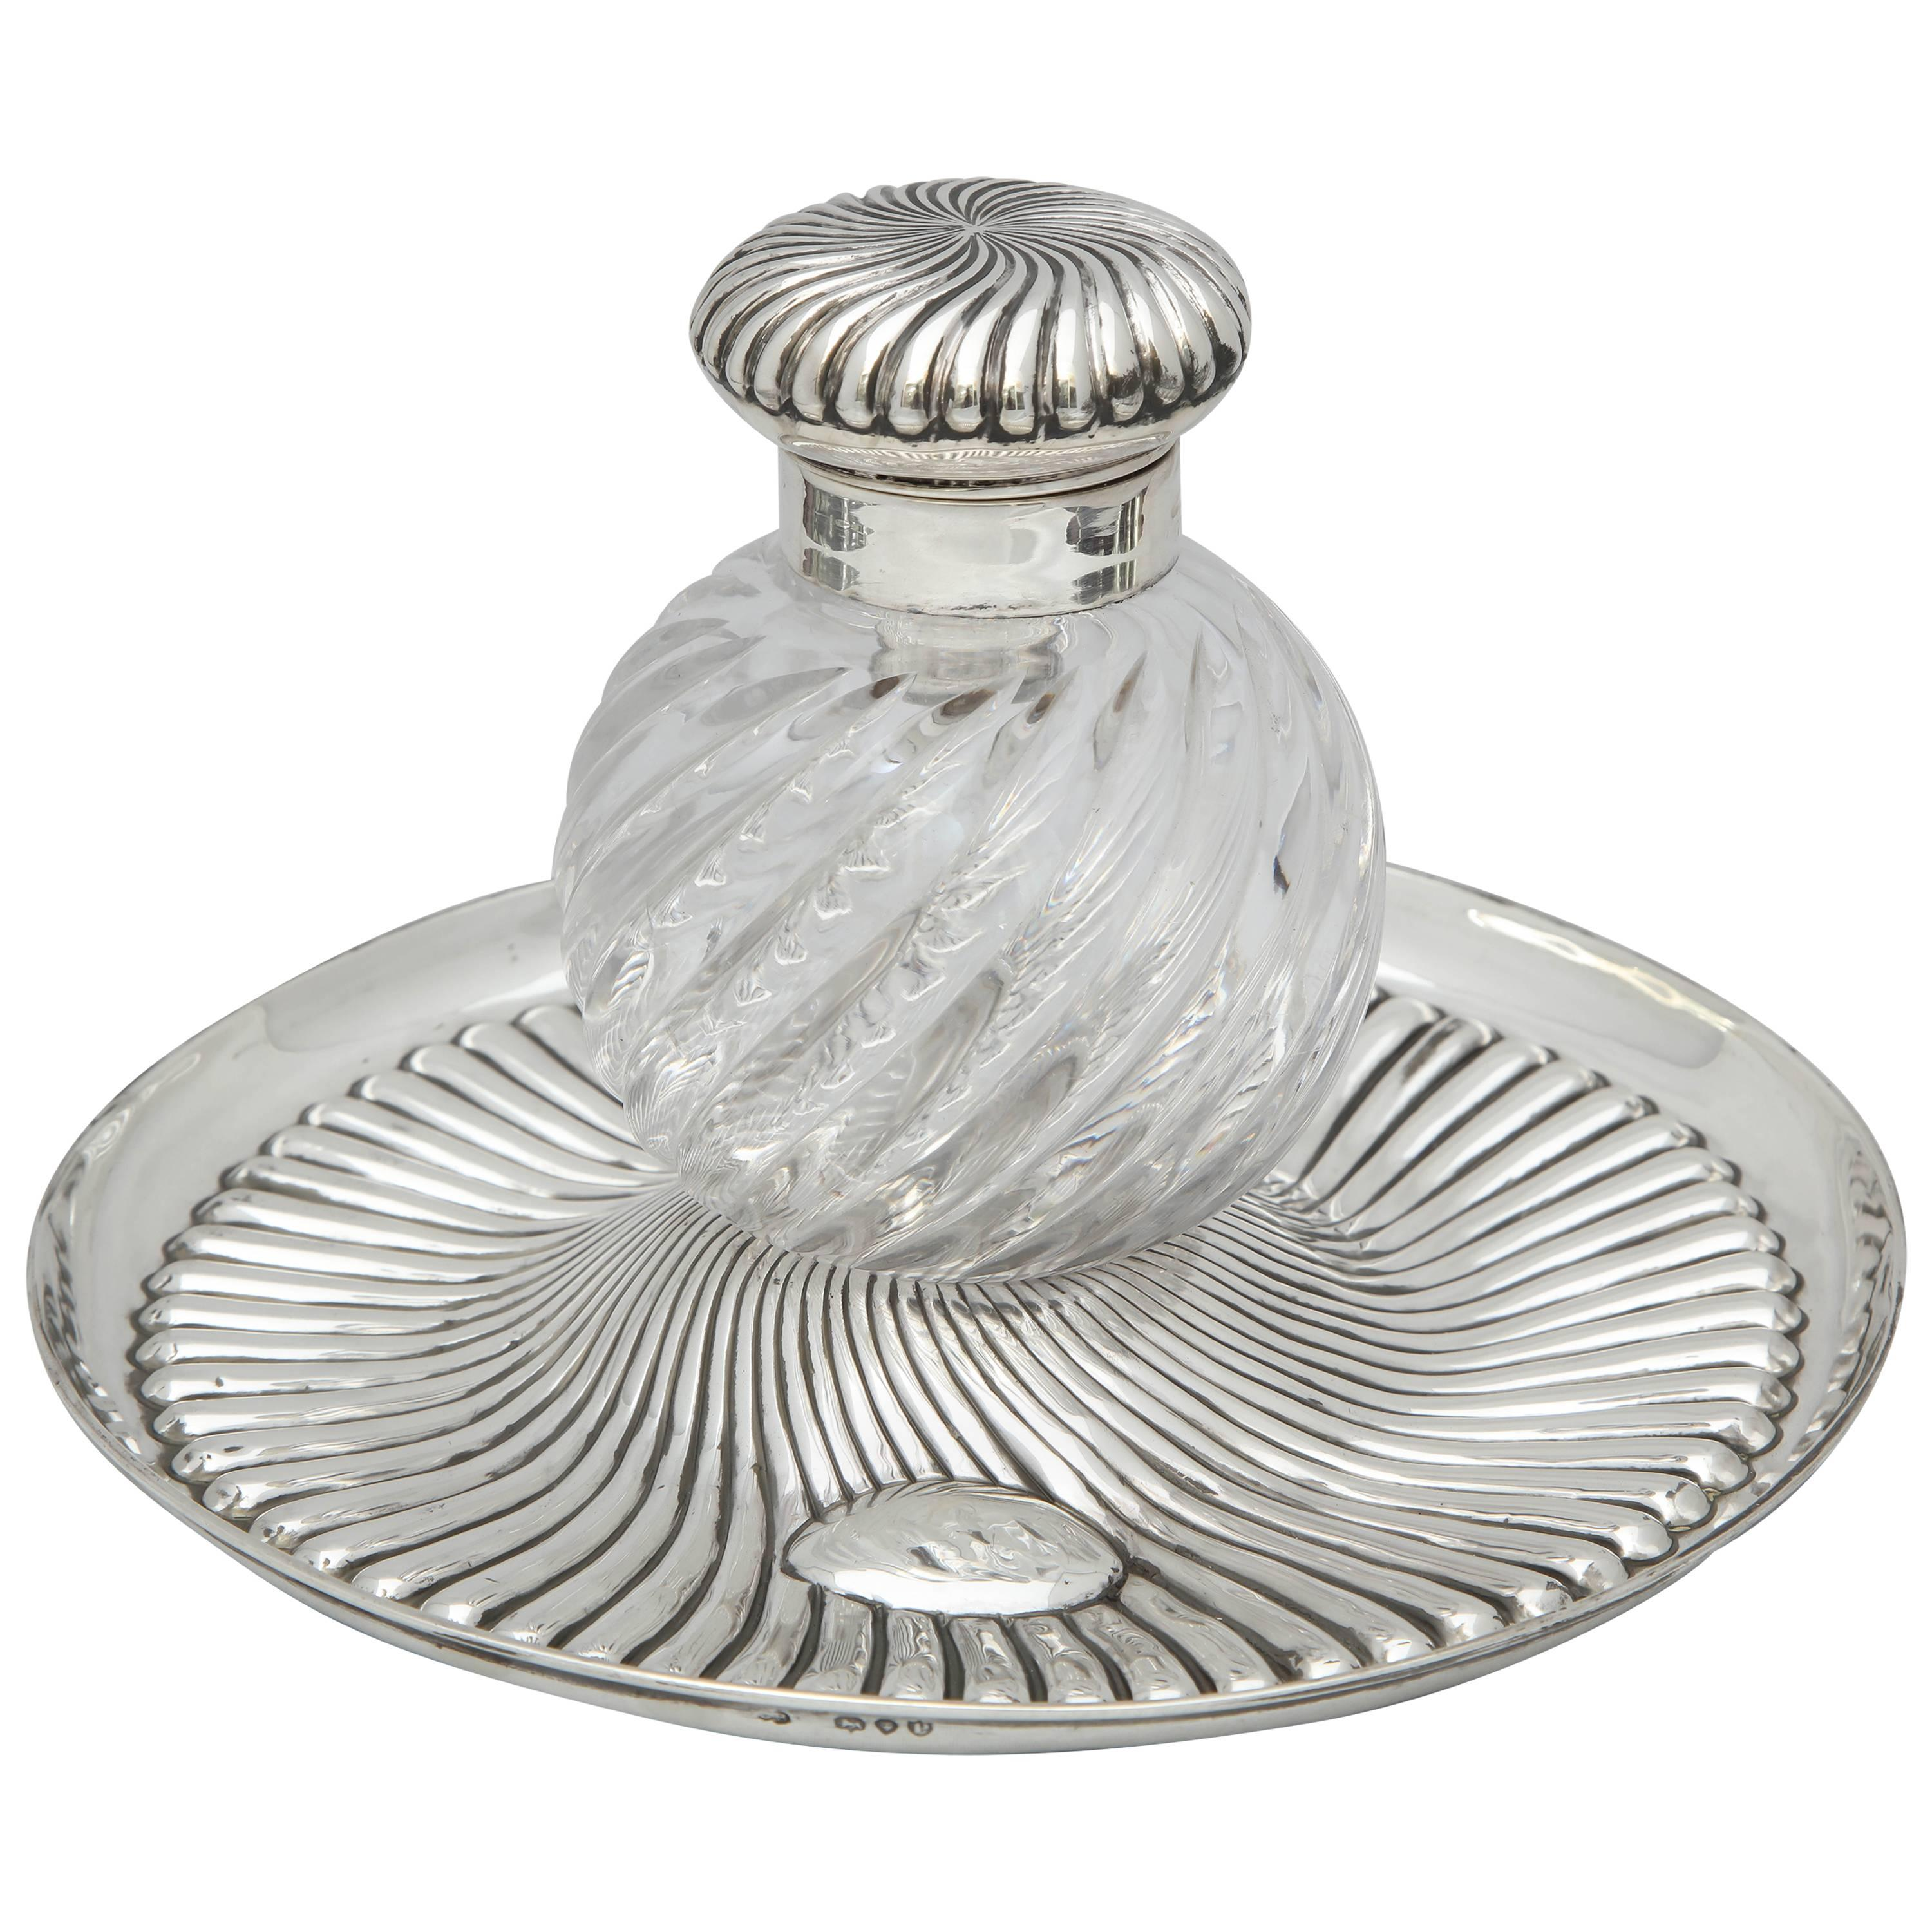 Rare Very Large Unusual Victorian Sterling Silver-Mounted Inkwell on Stand